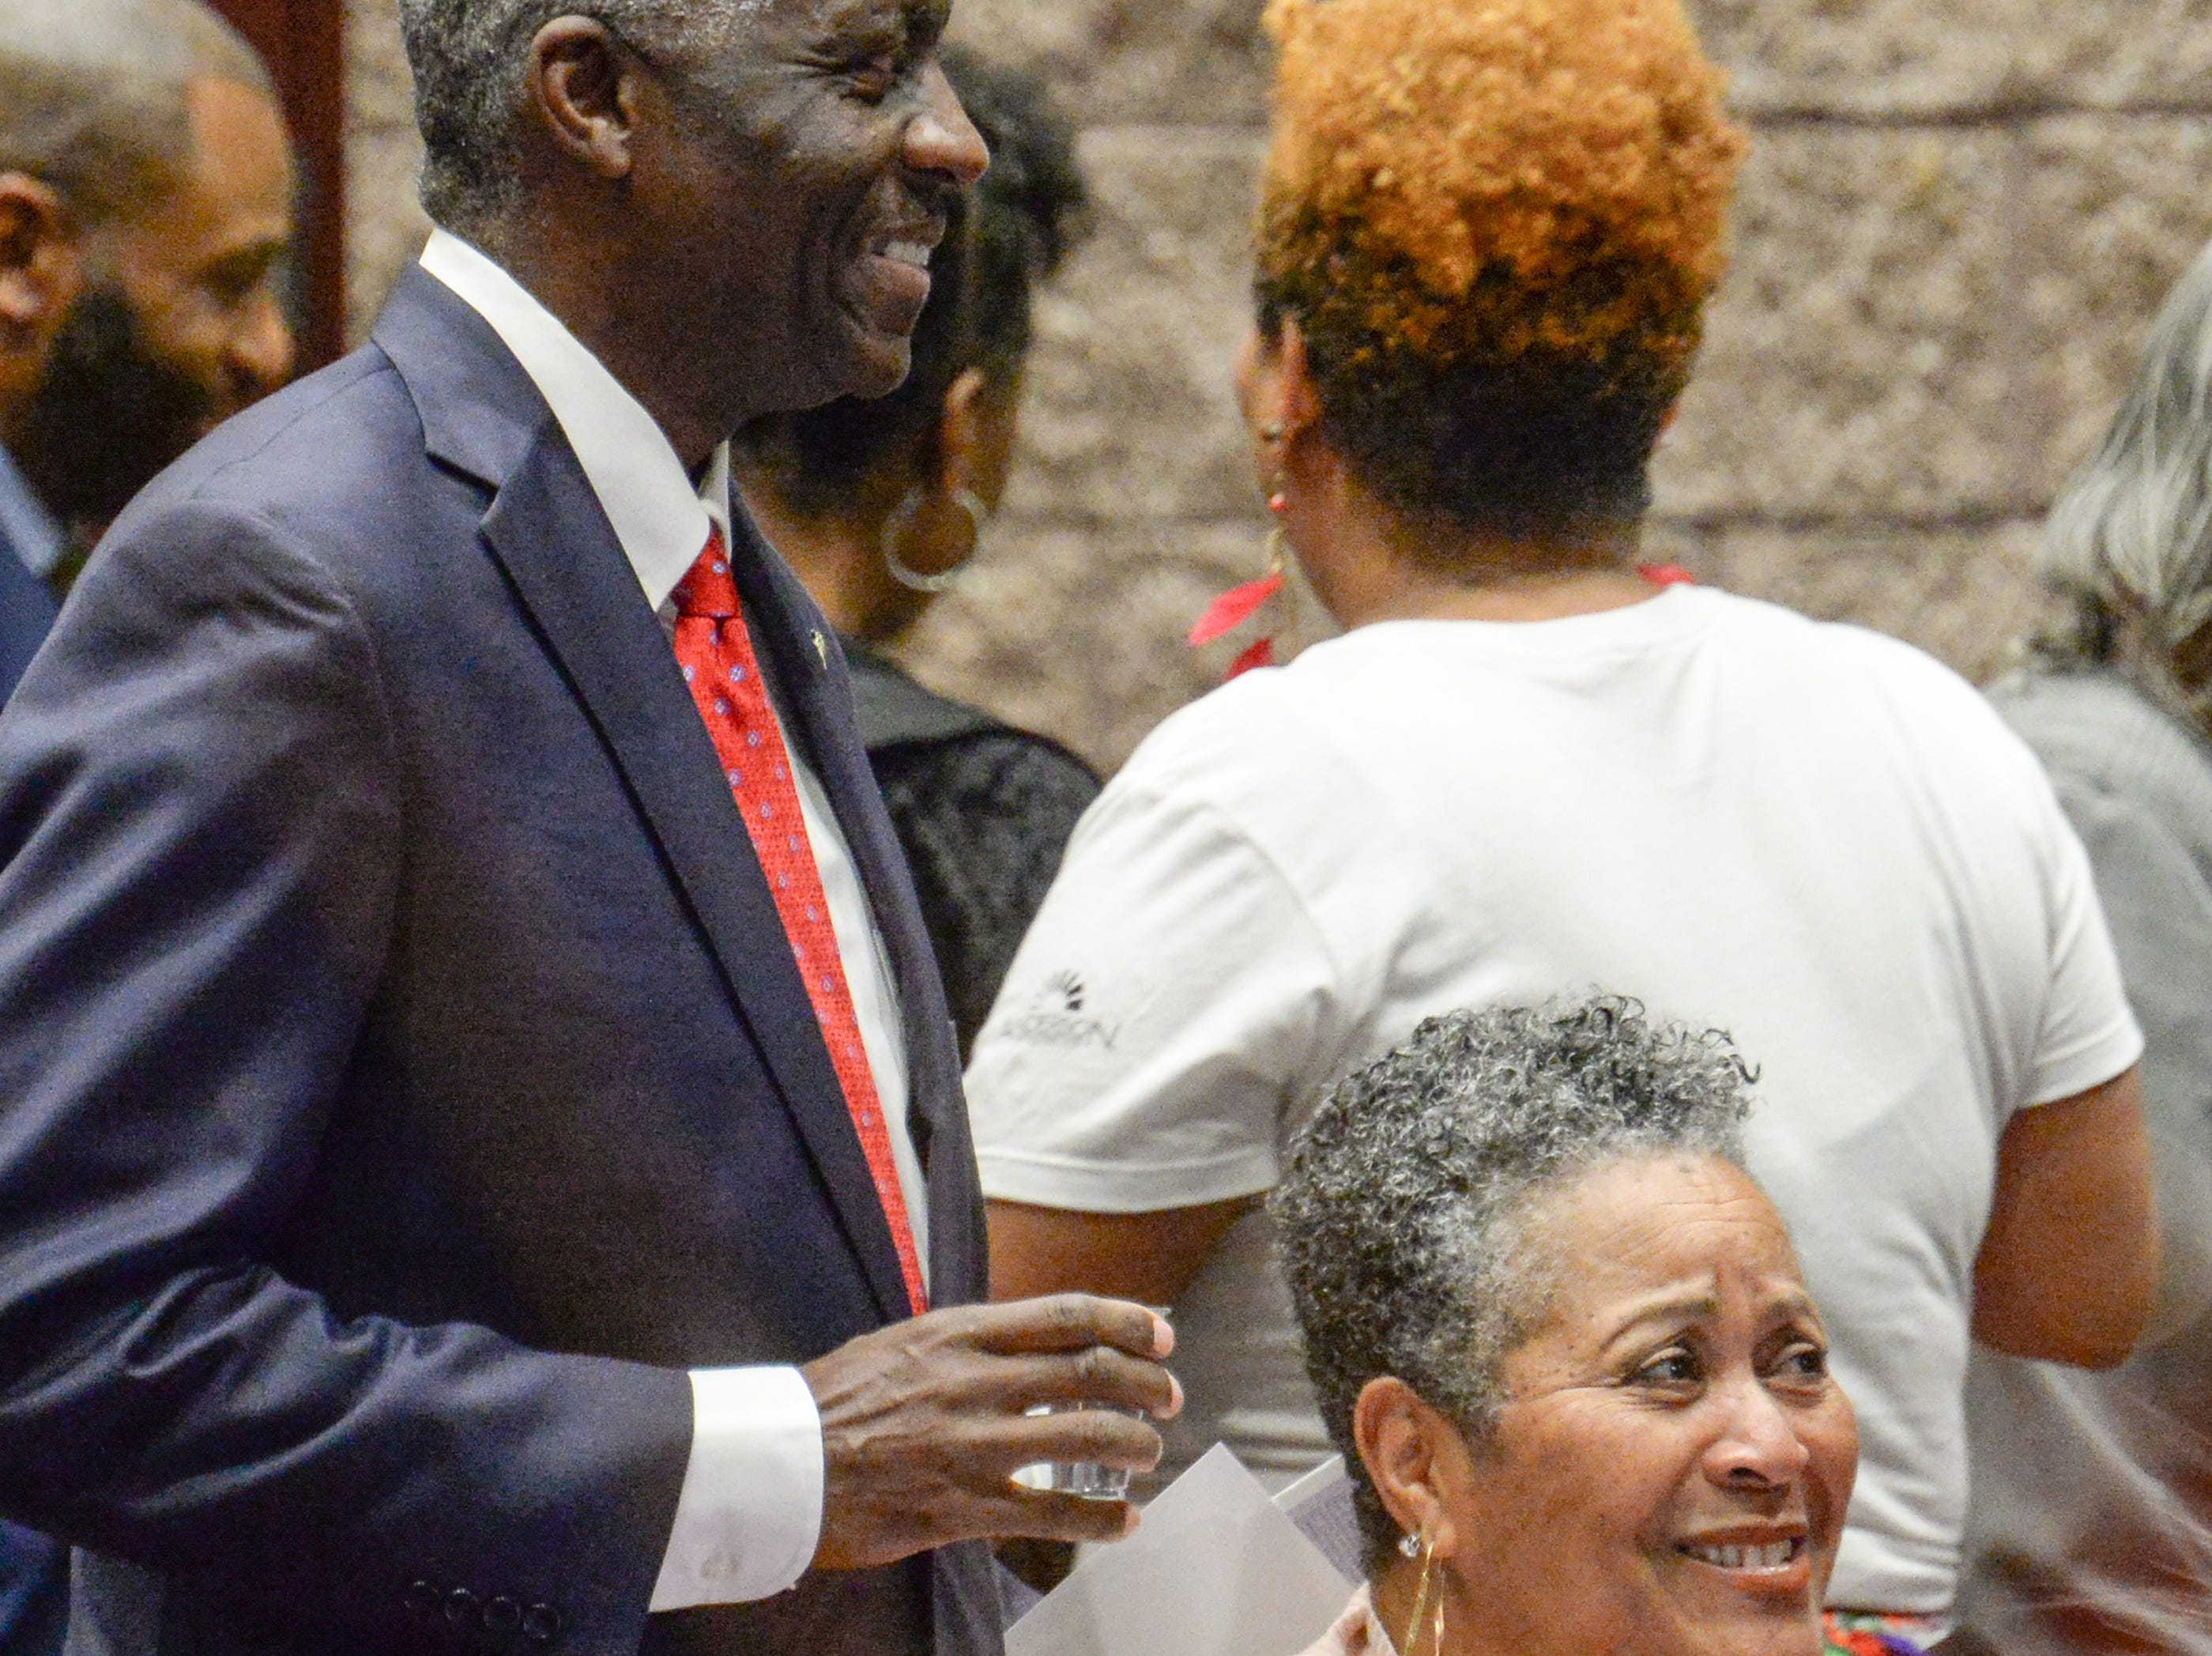 Mayor Terence Roberts, left, and Sandra Gantt of Pendleton town council, greet each other before at the Mayor's Martin Luther King Jr Breakfast in the Anderson Civic Center Friday, January 18, 2019.